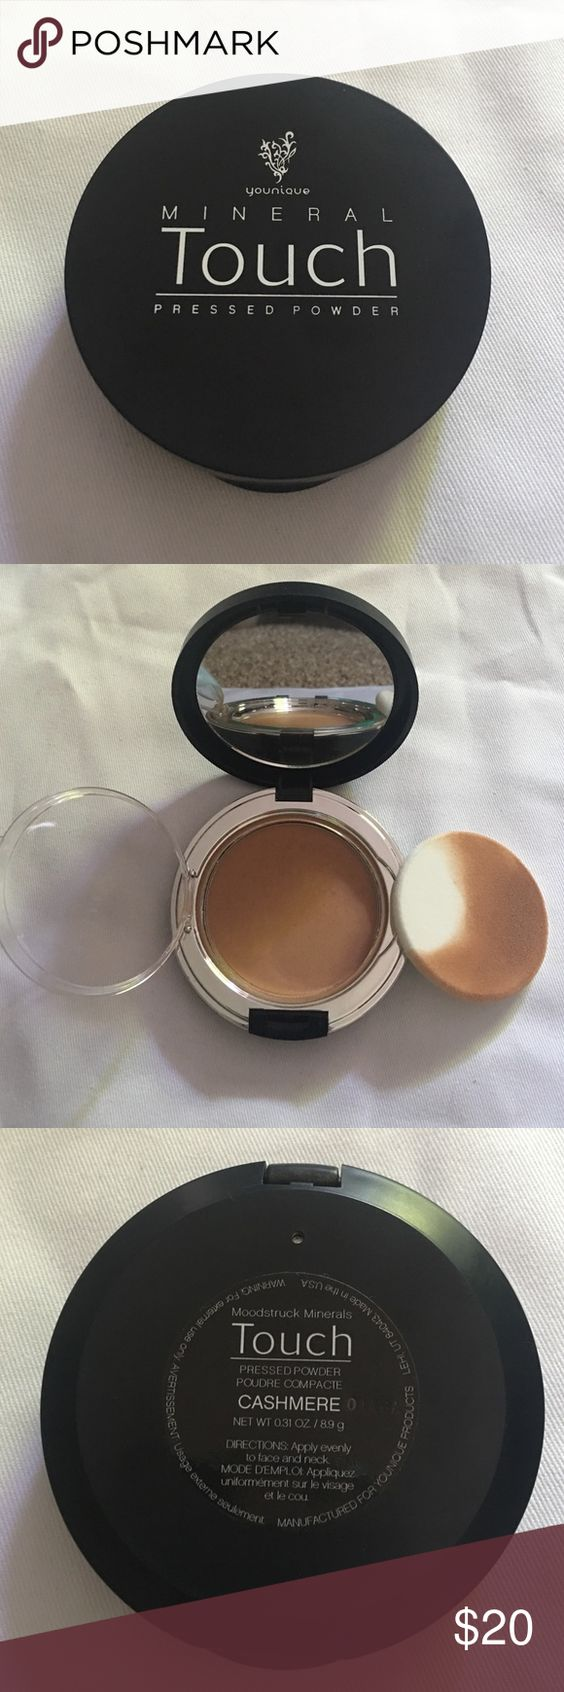 Younique Mineral Touch Pressed Powder (Cashmere) Younique Mineral Touch Pressed Powder in the color Cashmere. Opened and used only once (wasn't the right color for me). As you can see in the picture I used the sponge once to try. Do not have original box. Color currently on back order on Younique website. Younique Makeup Face Powder